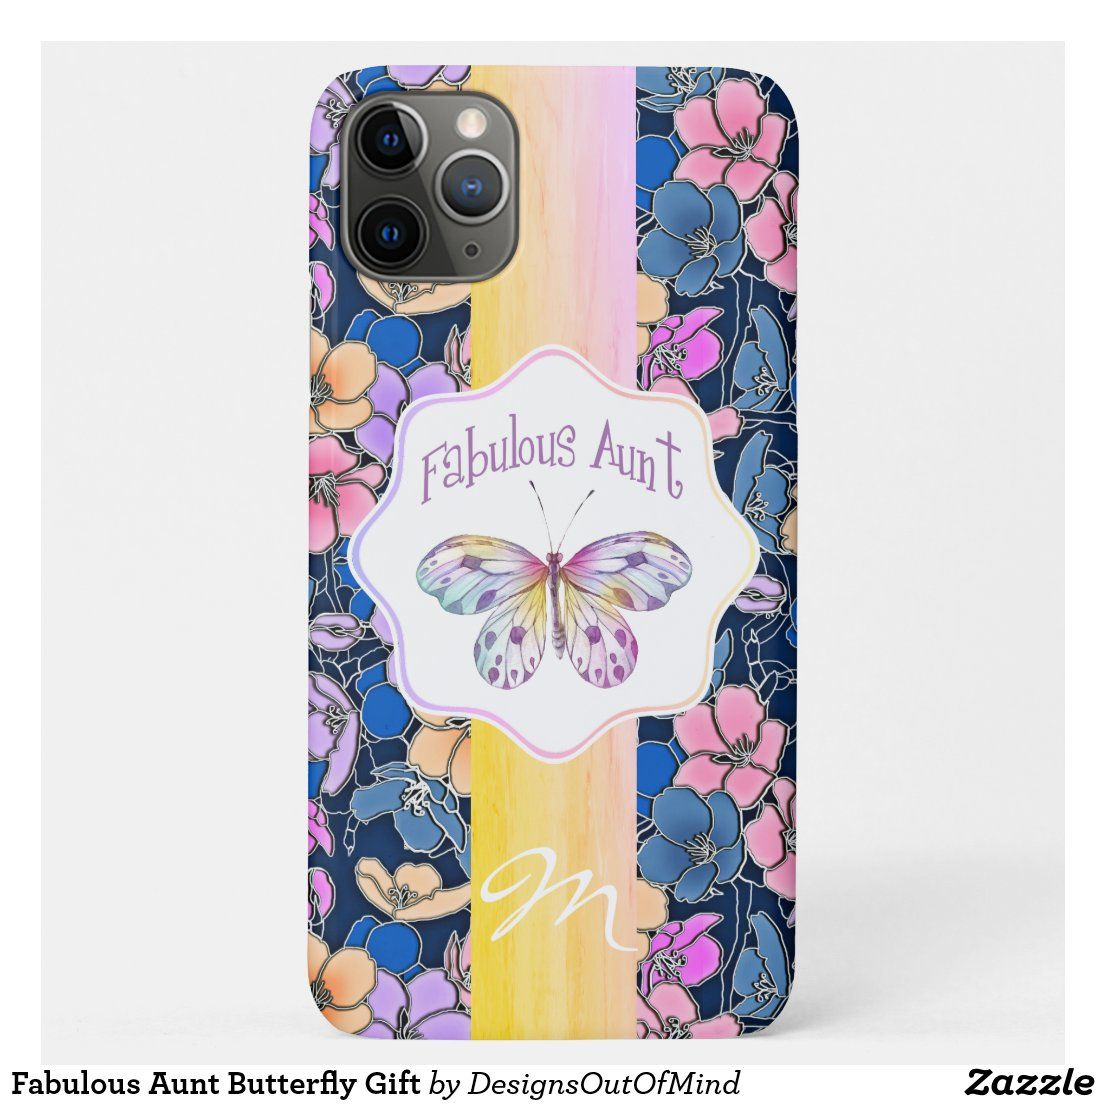 Fabulous aunt butterfly gift casemate iphone case